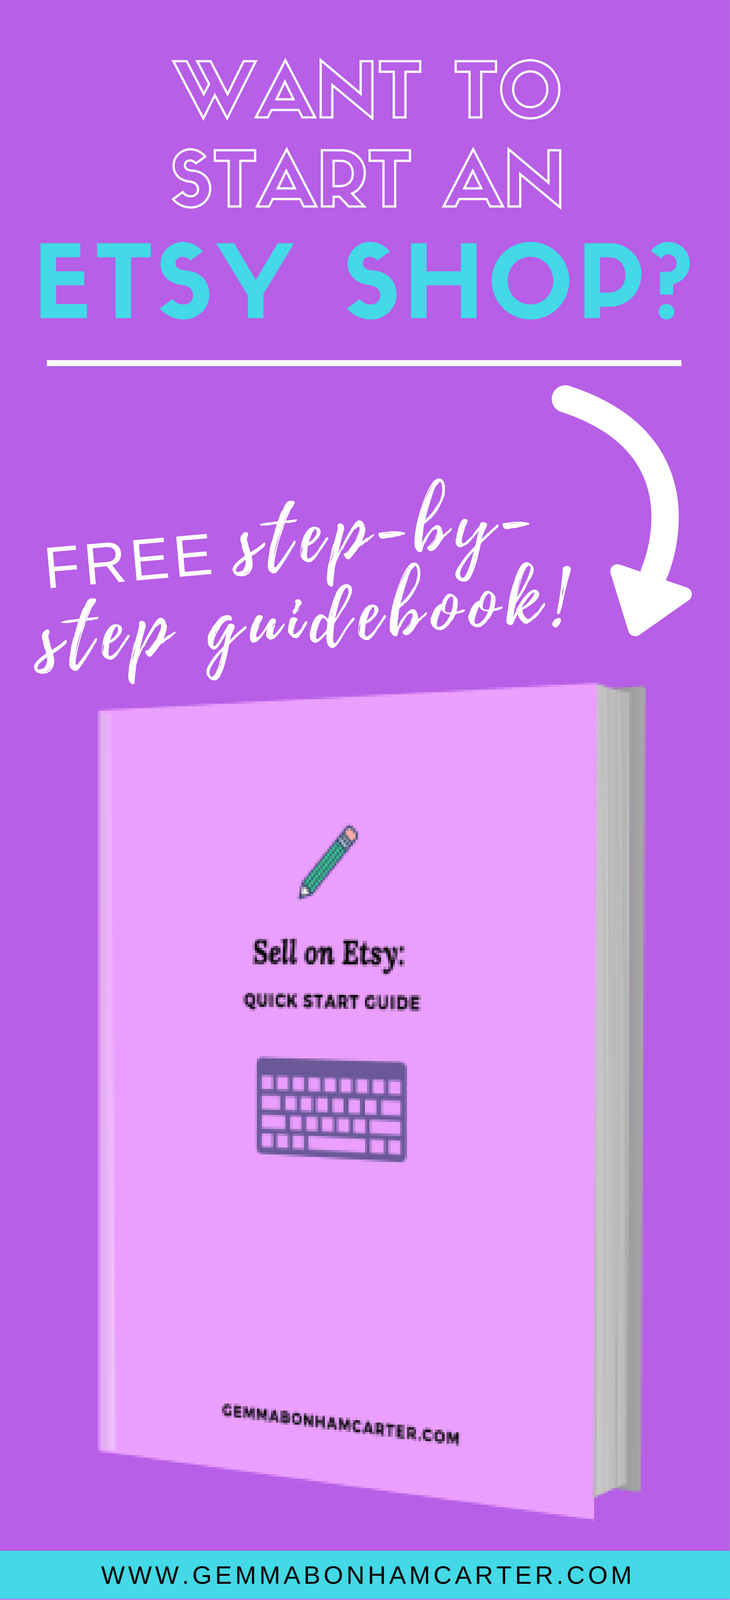 How to Start an Etsy Shop | Get the step-by-step guide on how to launch an online shop on Etsy. Including free guide and 40 free listings!